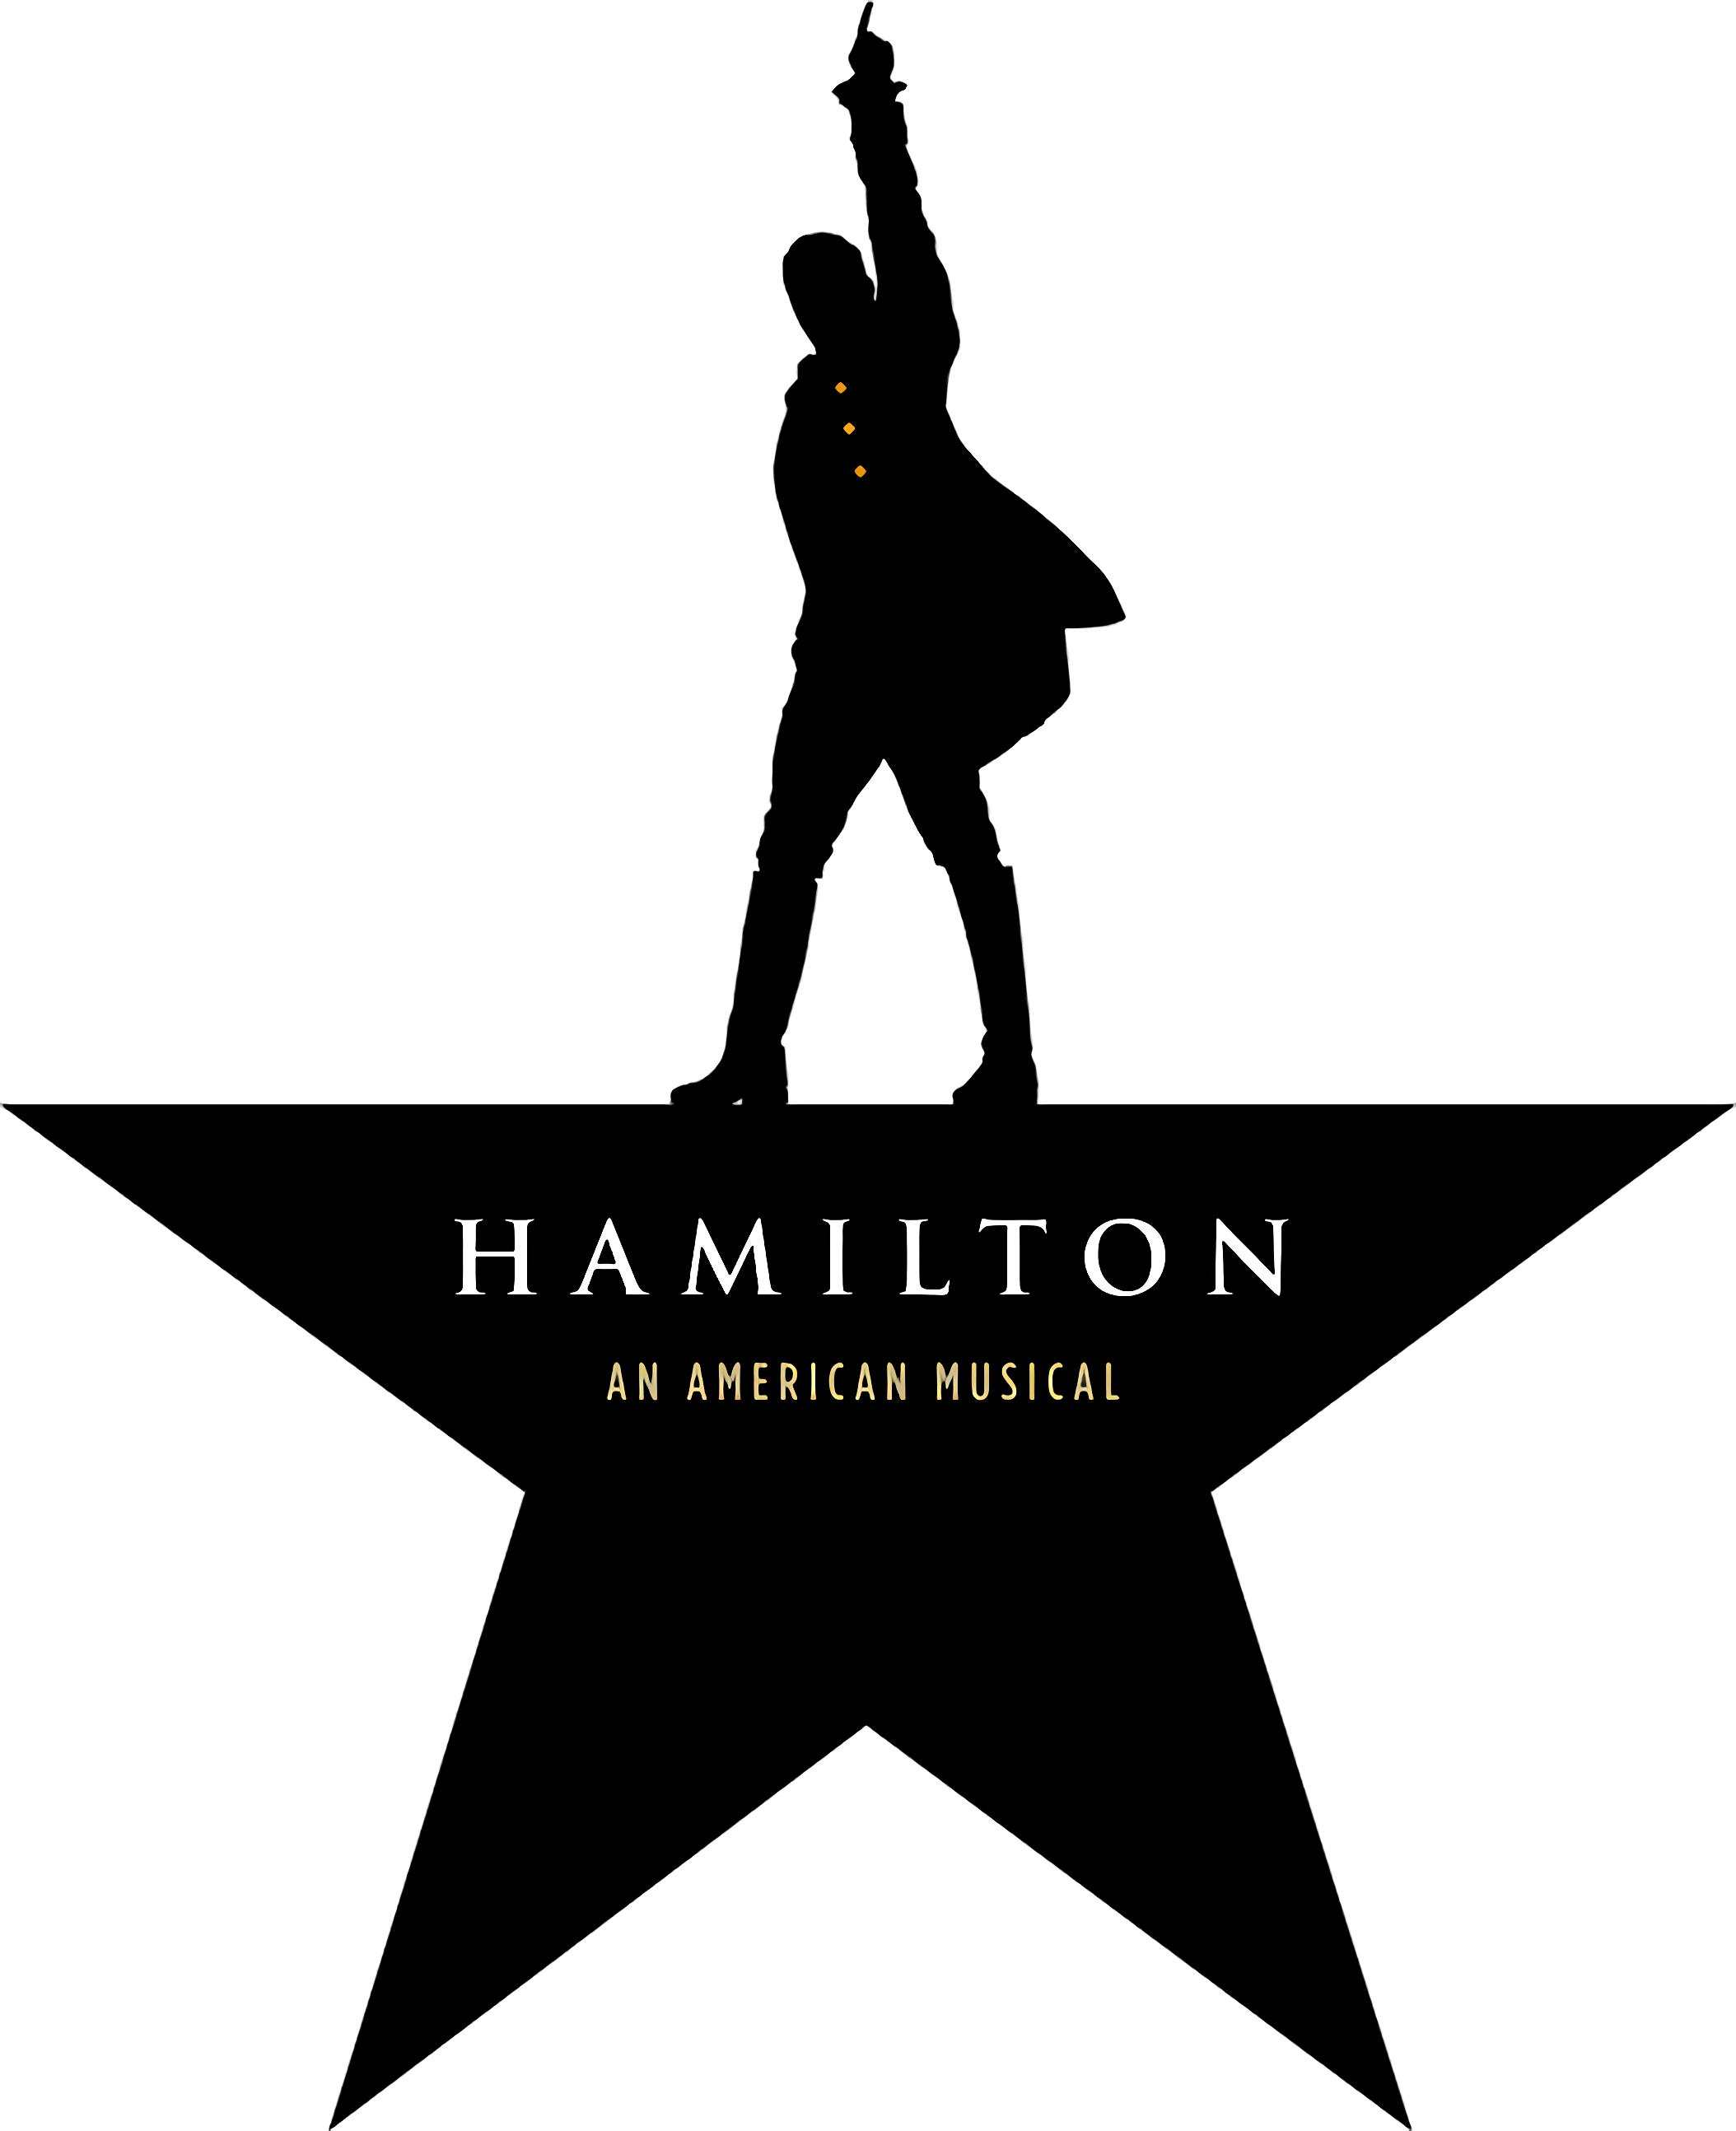 Musical Theatre Png - Hamilton Musical theatre Logo Broadway theatre - applause png ...